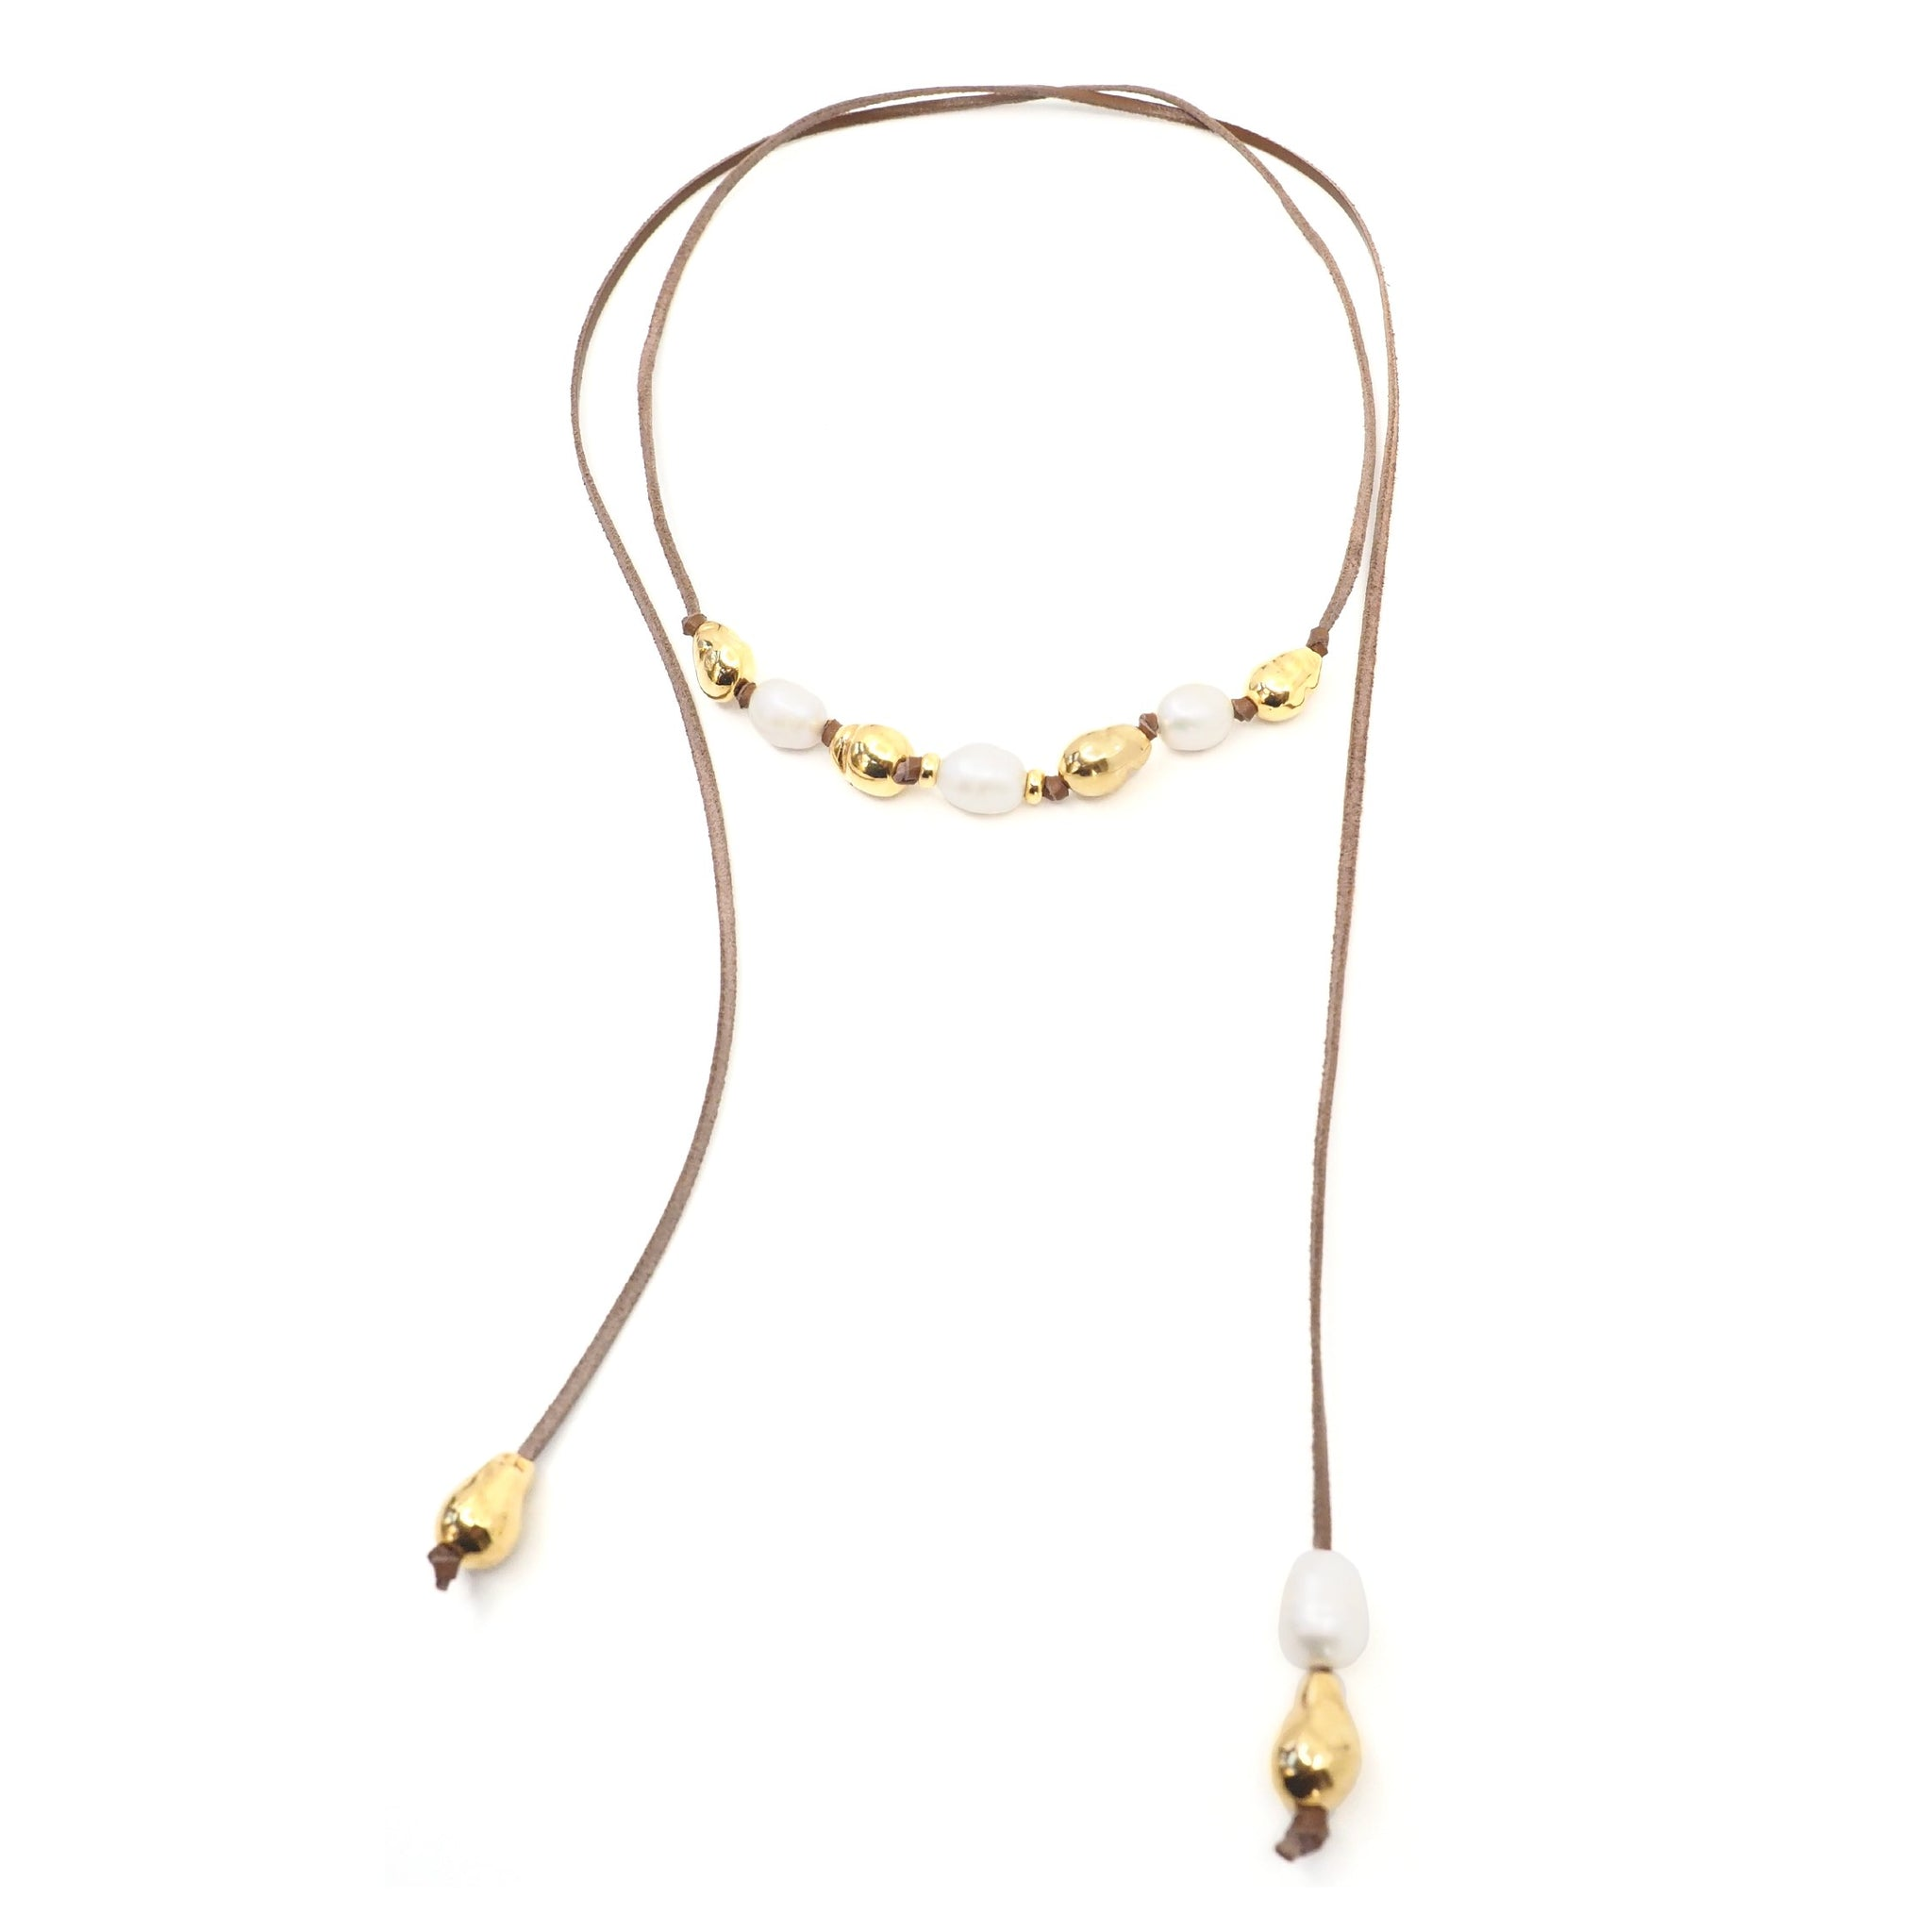 The Victoria Necklace in Gold, Pearl & Leather